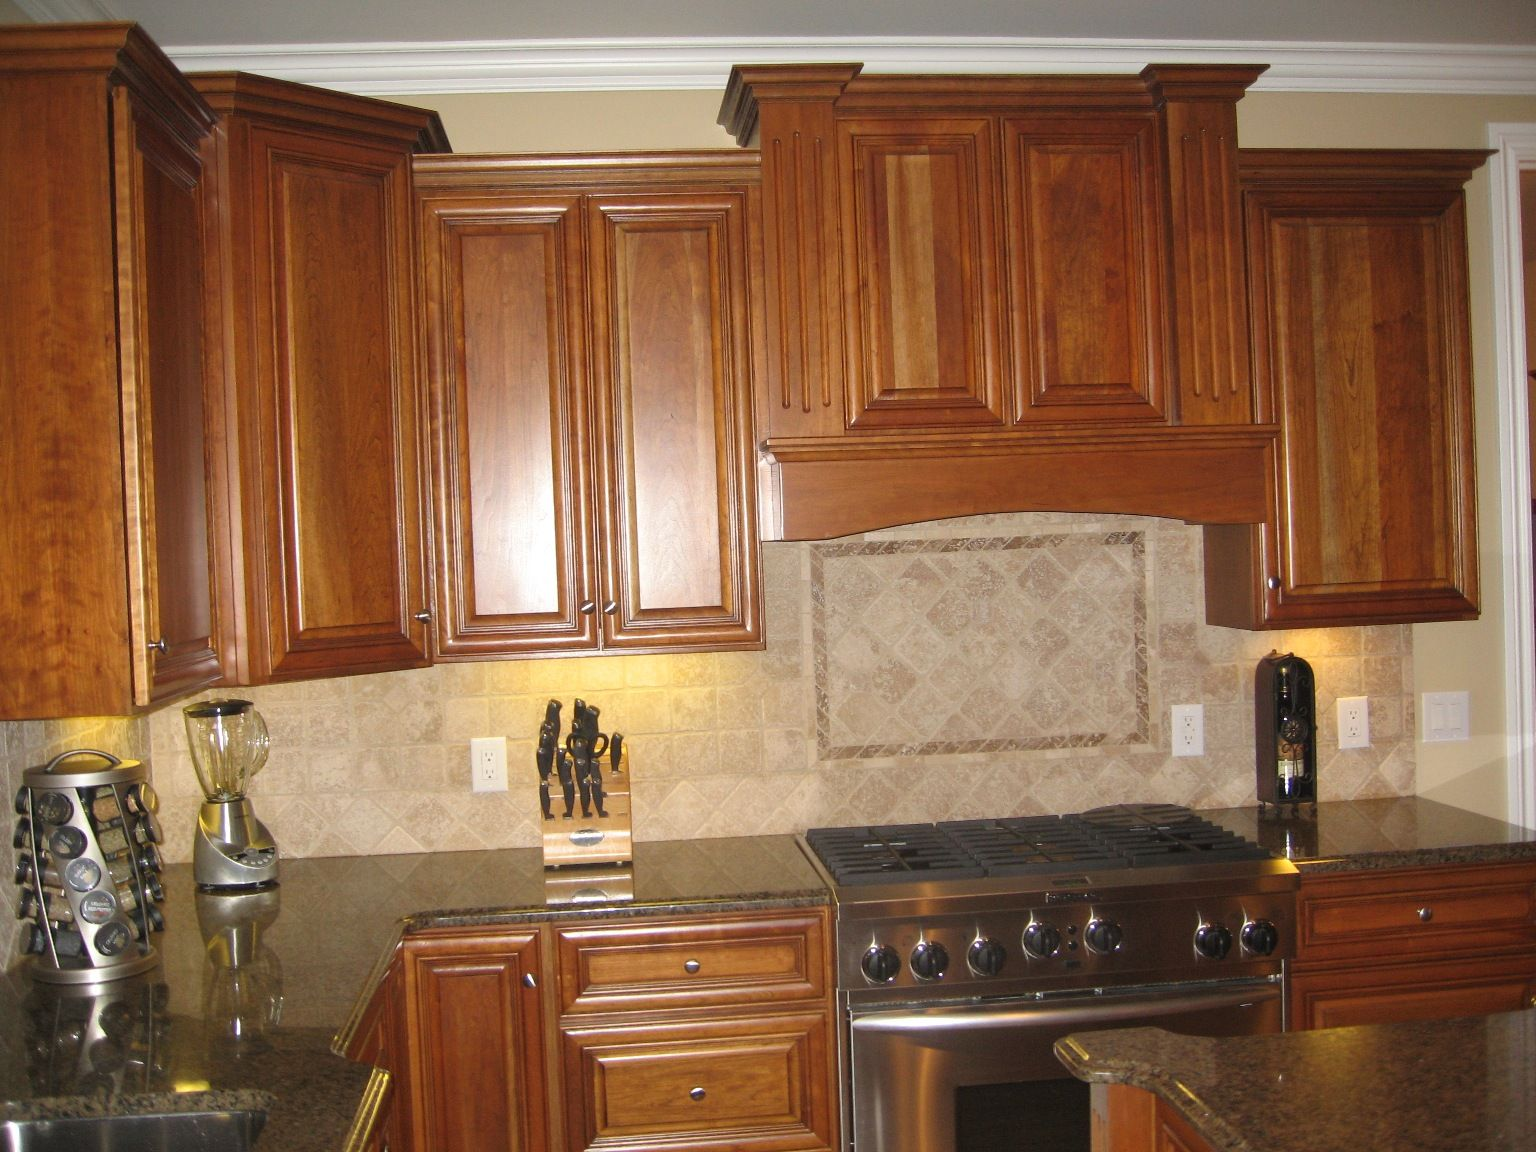 Kitchen quartz countertops with oak cabinets quartz countertops for cherry cabinets cabinets and - Pictures of kitchens with quartz countertops ...